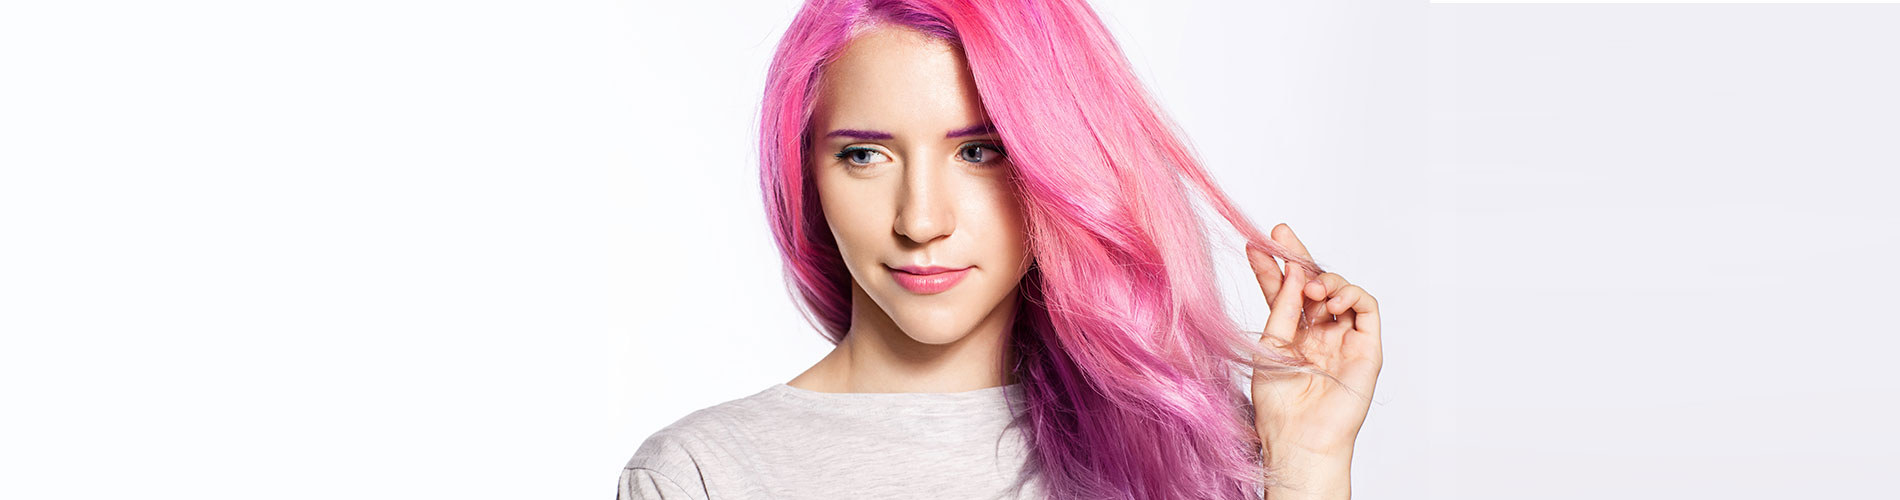 young lady with bright pink hair on white background